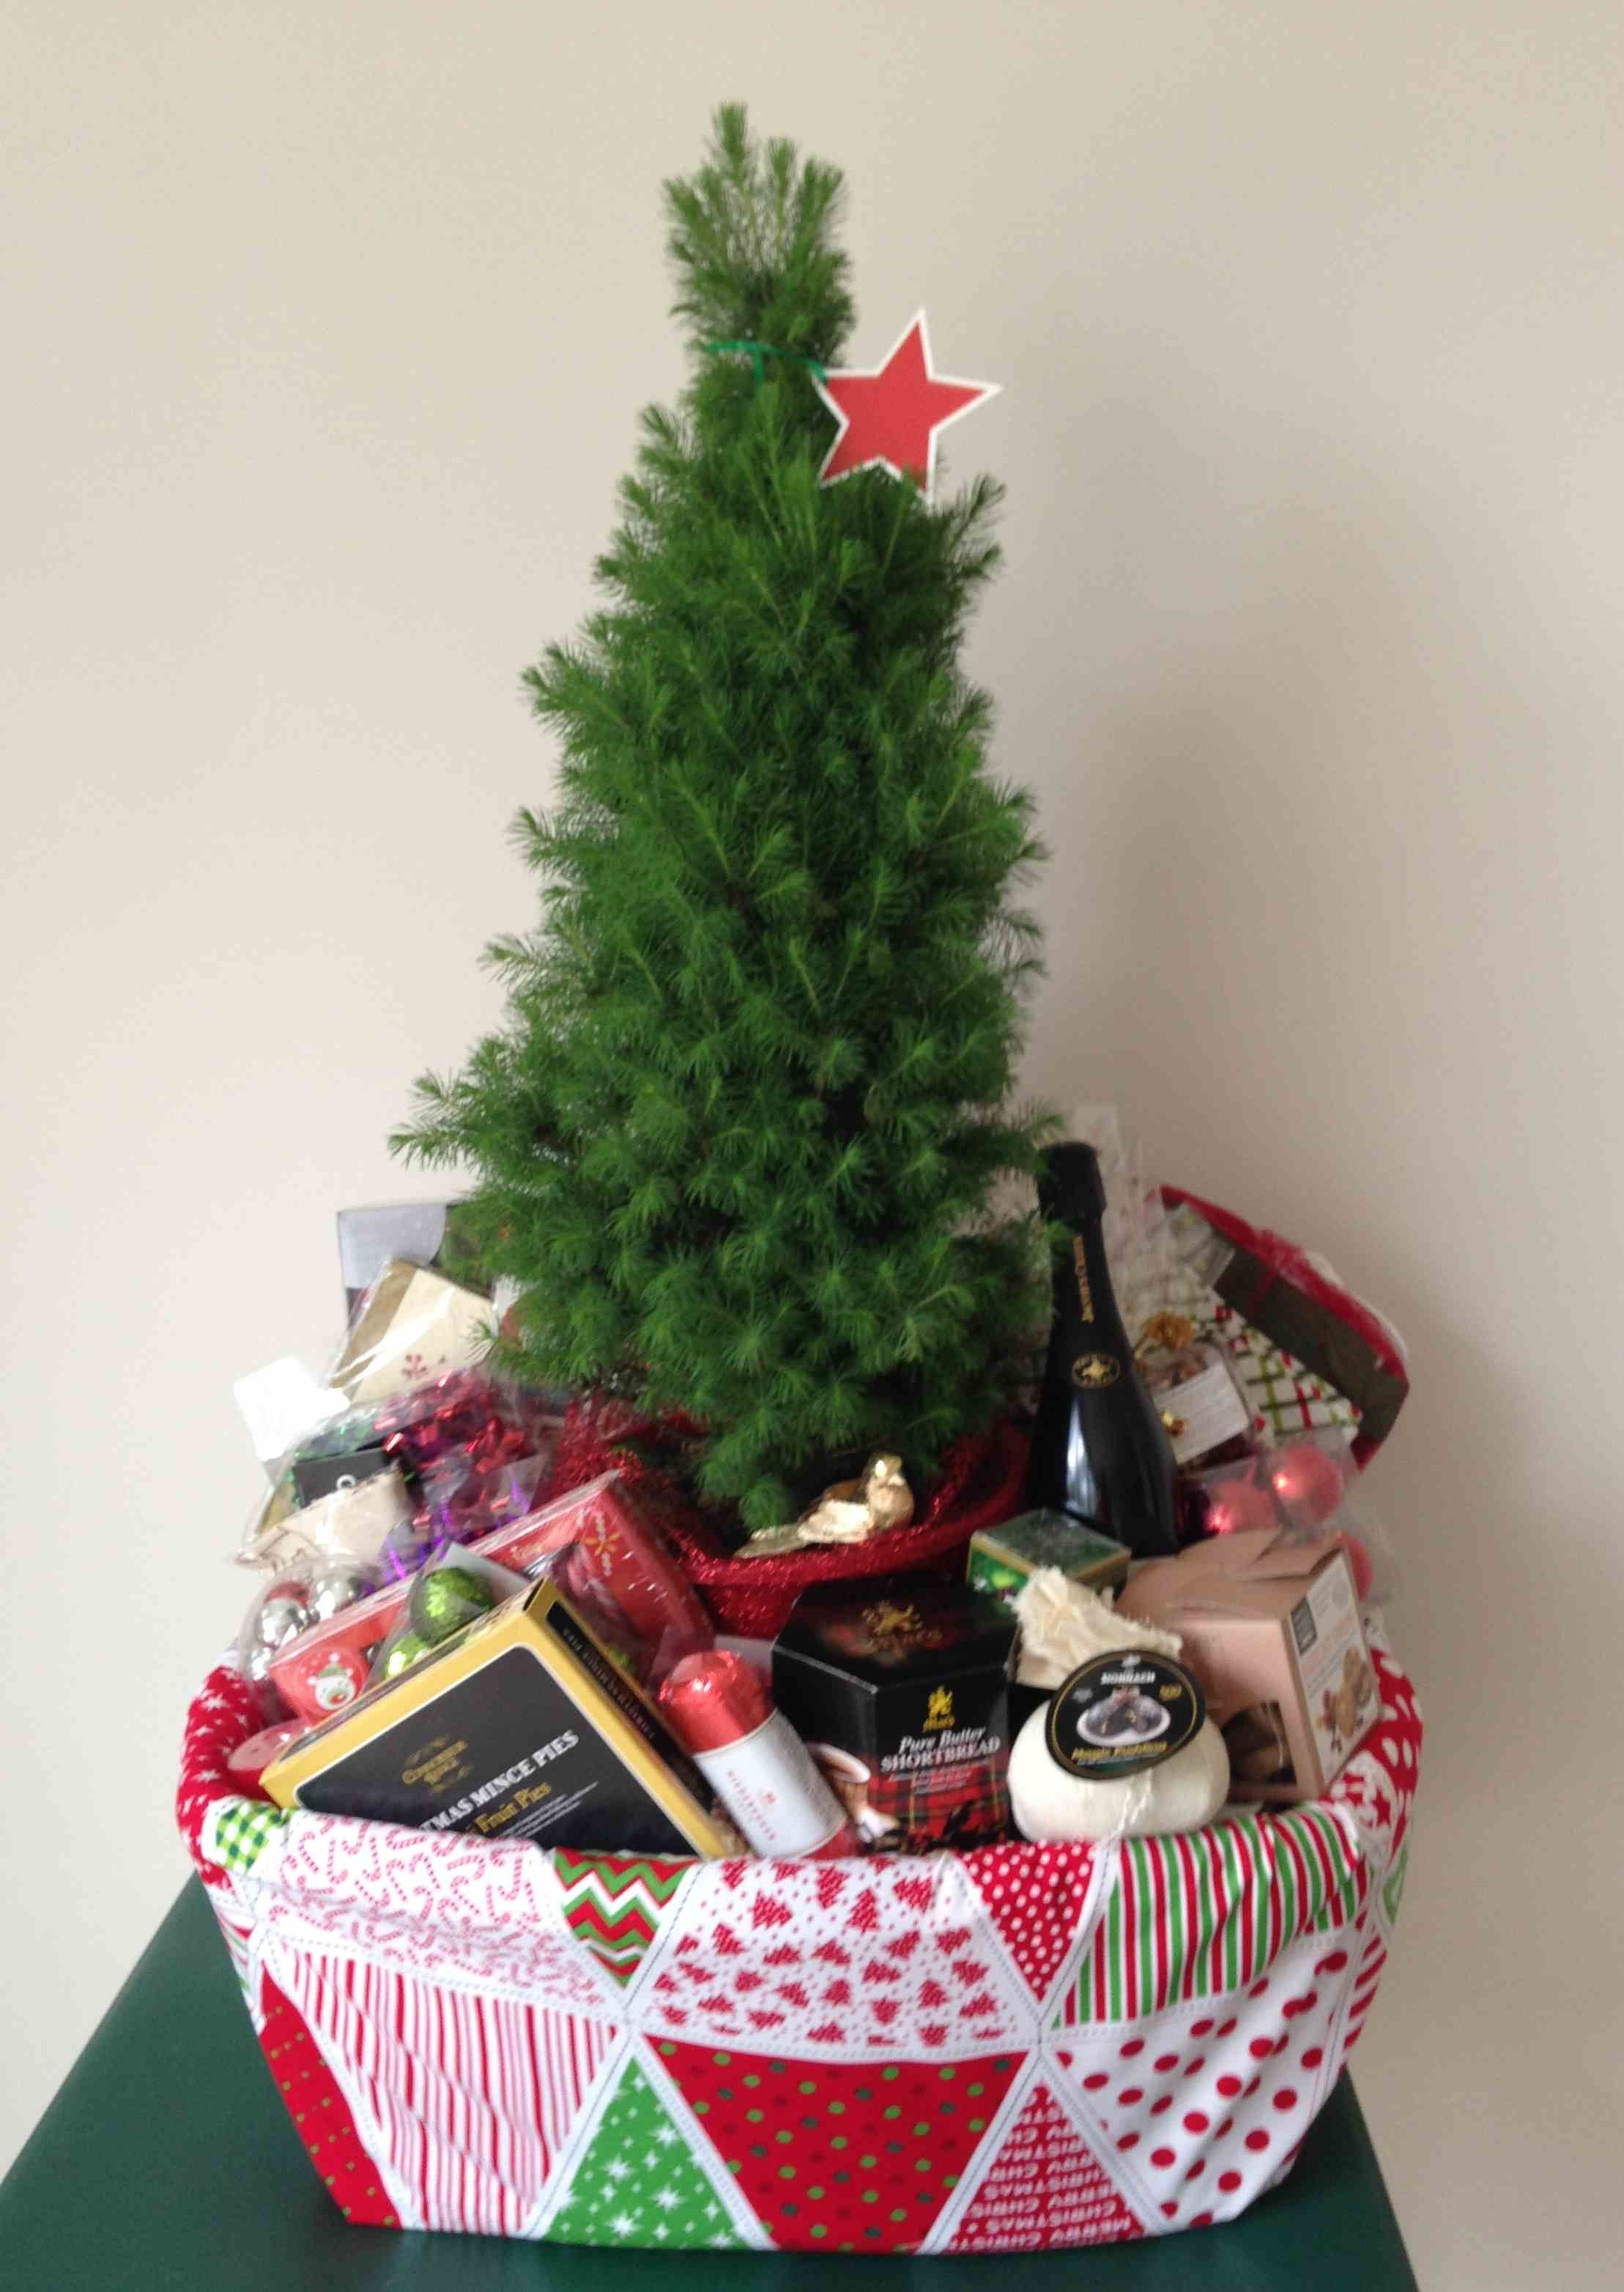 Pin By Christina Andrews On Celebrate Christmas Pinterest Christmas Gifts Raffle Baskets Raffle Basket